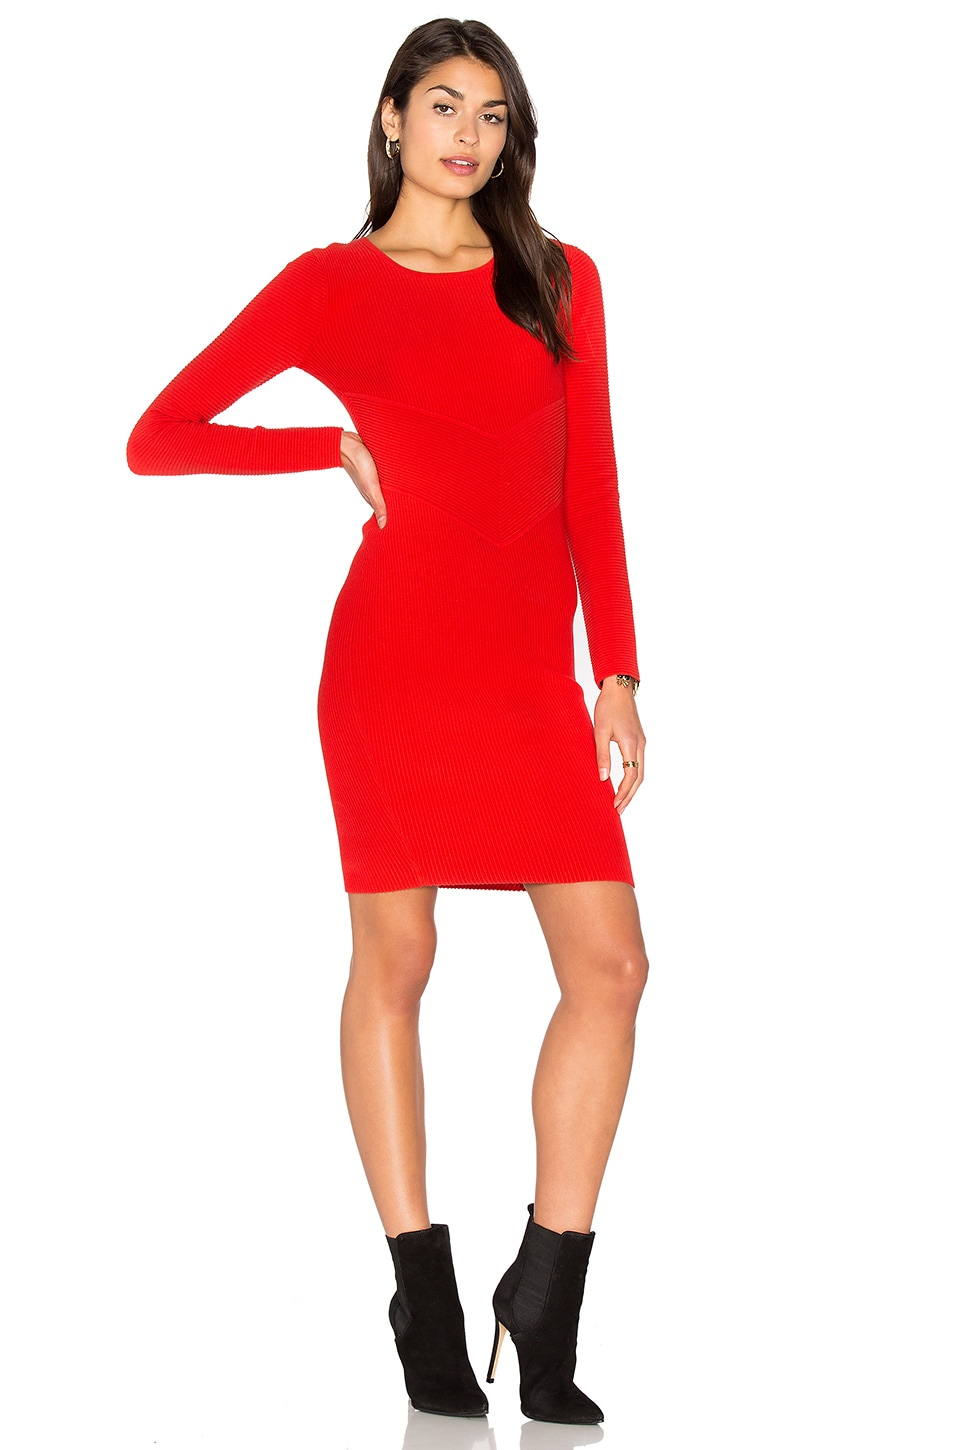 MILLY Angled Ottoman Sheath Dress in Red